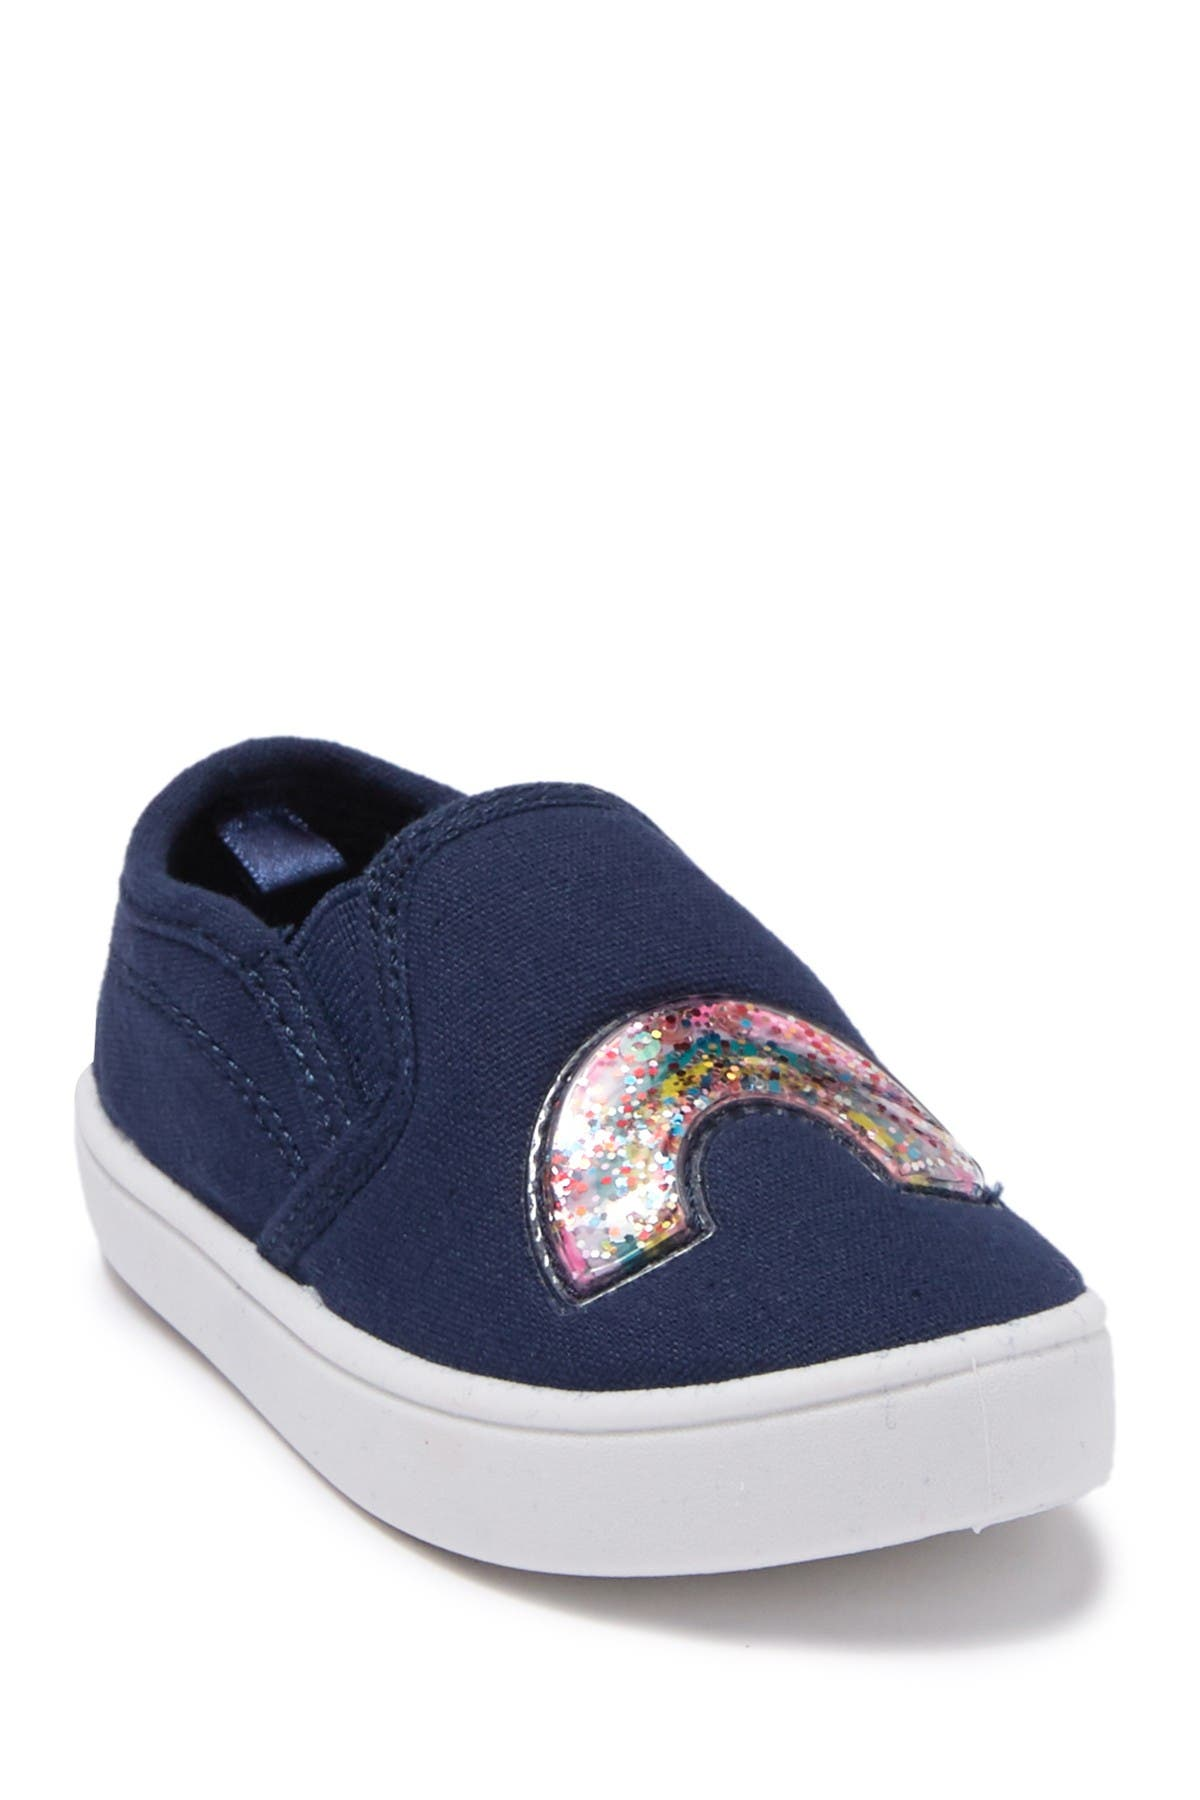 Image of Carter's Glitter Accent Canvas Sneaker